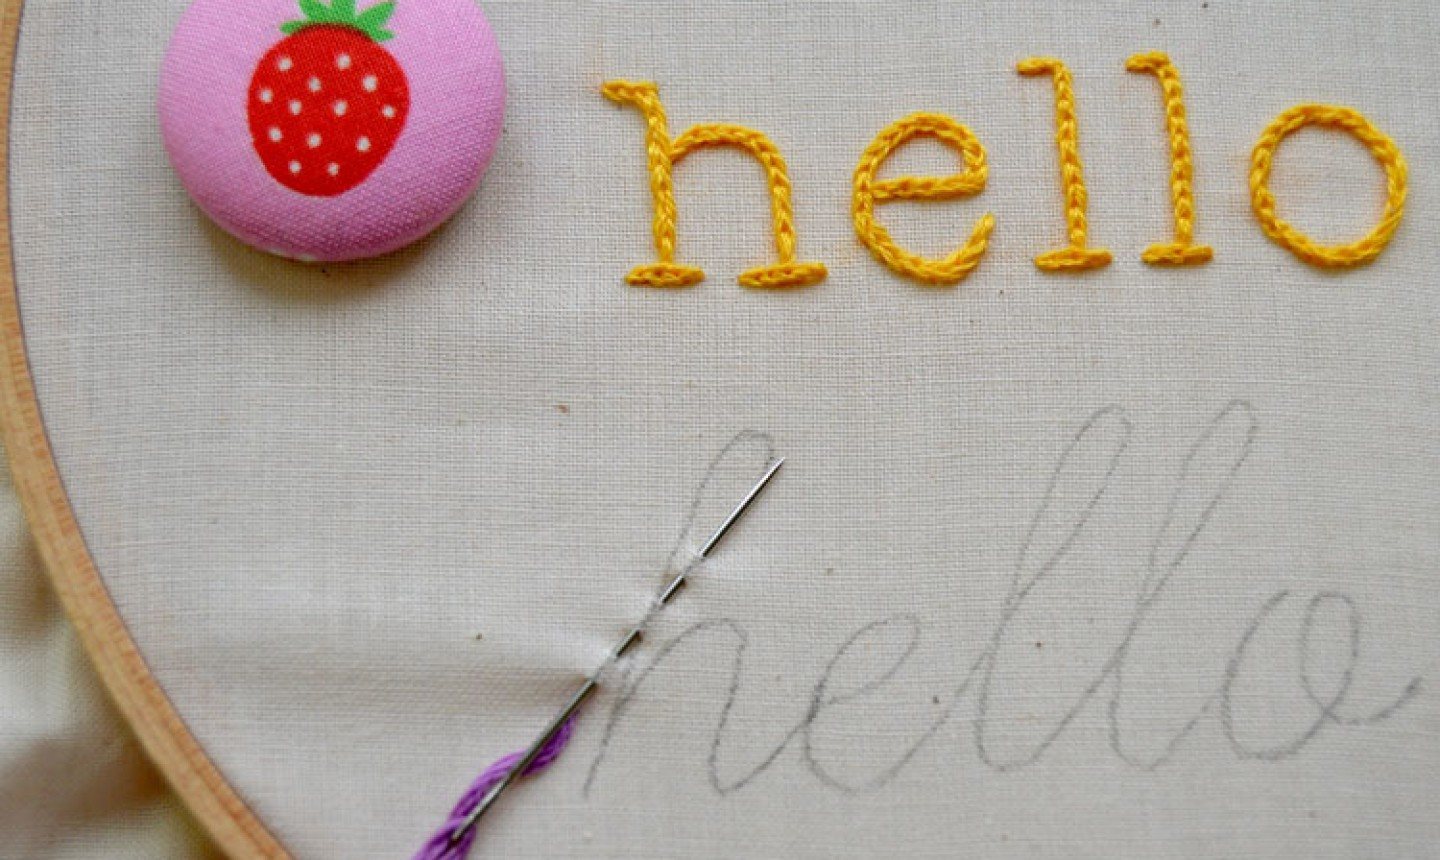 Embroidery Alphabet Patterns 4 Surprisingly Easy Stitches For Perfect Hand Embroidered Letters